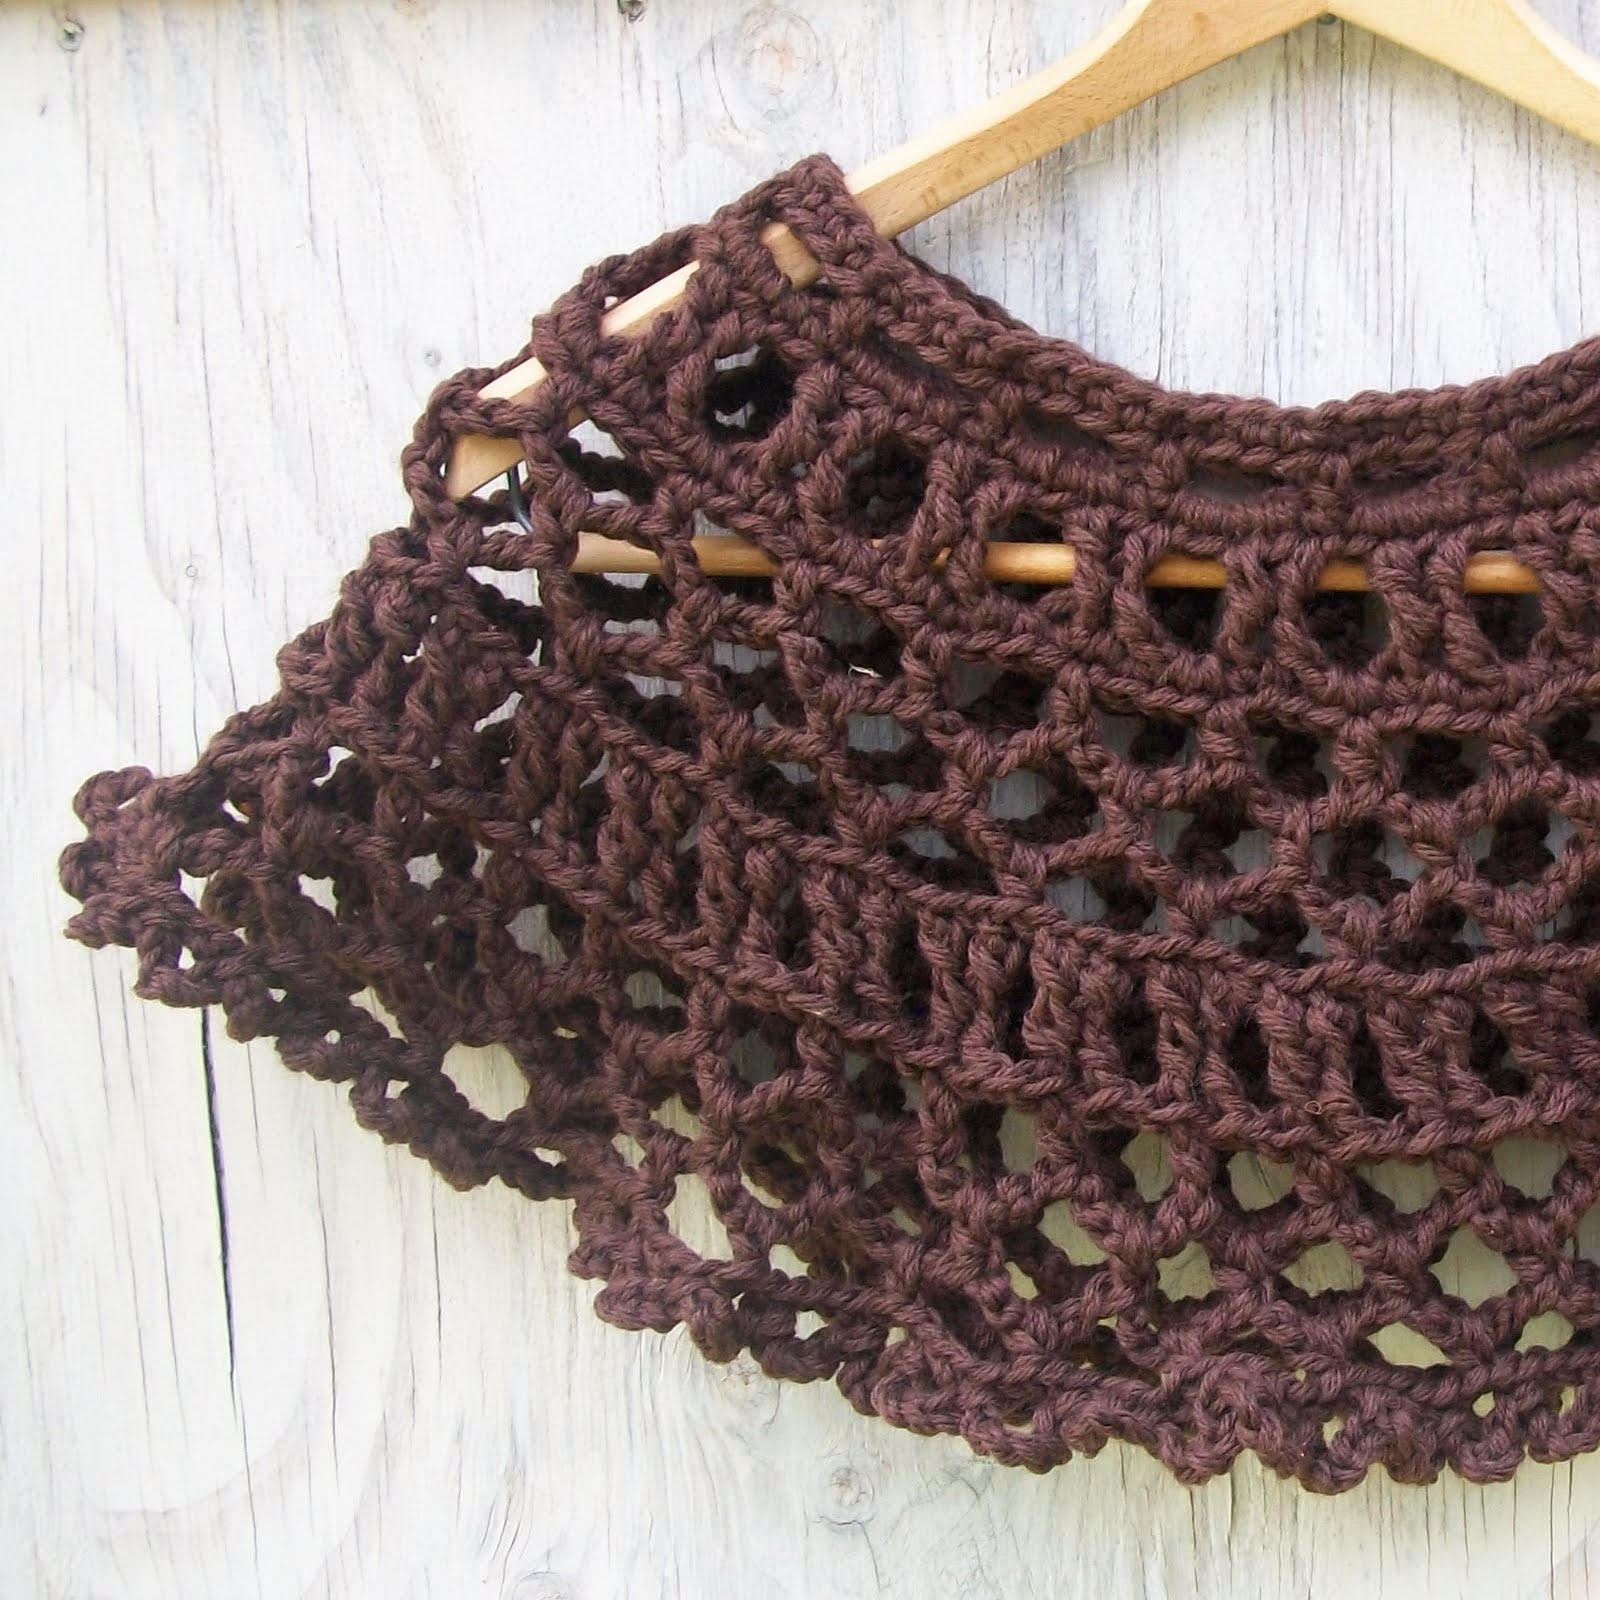 chocolate lace template - knitting architect dark chocolate lace cape pattern